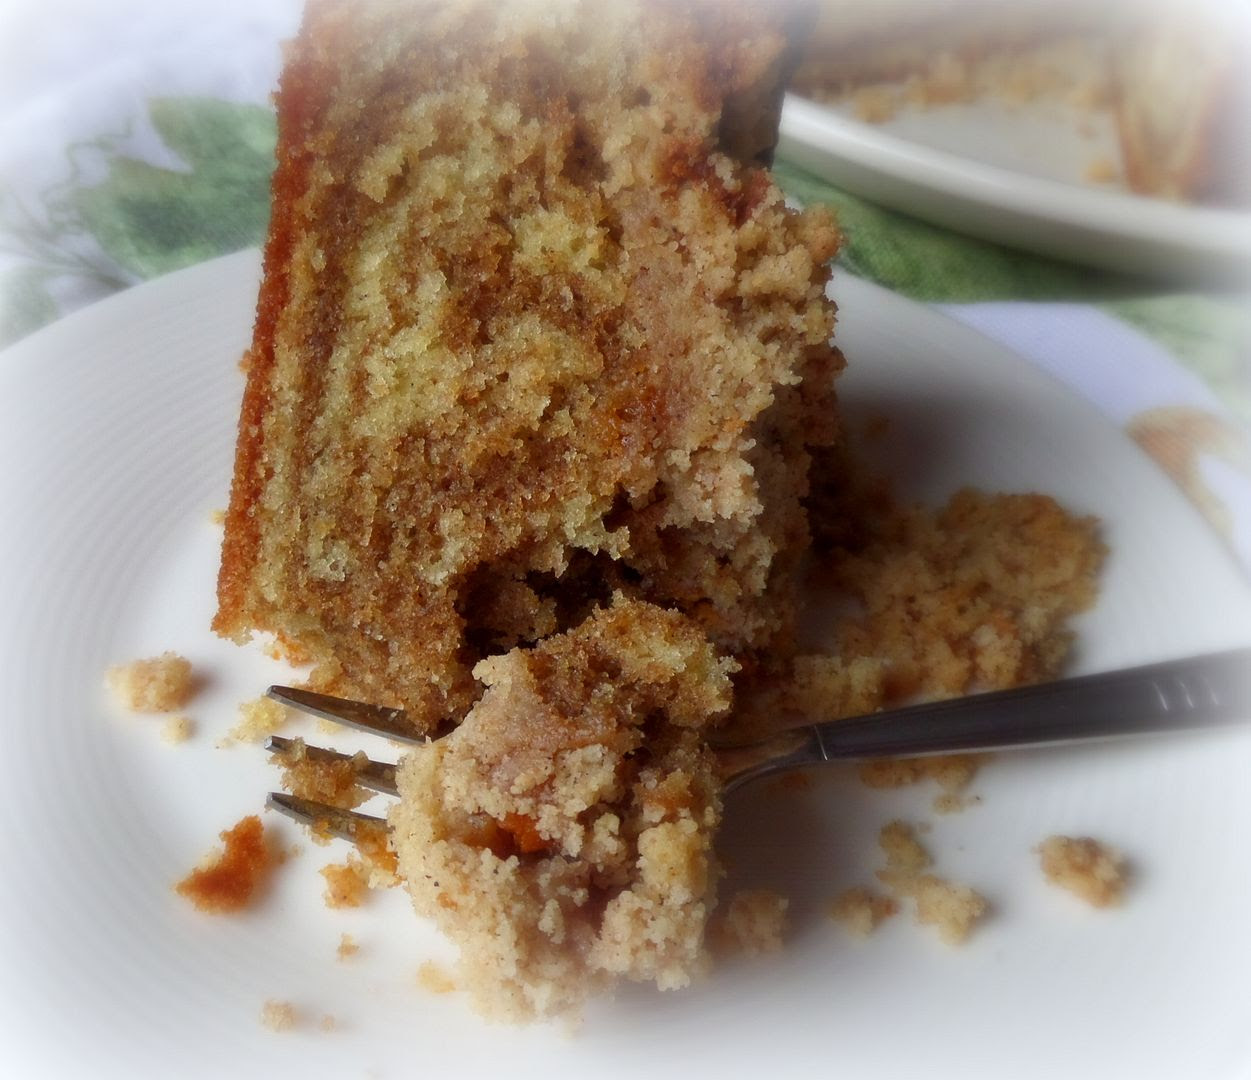 Marbled Spice Crumble Cake